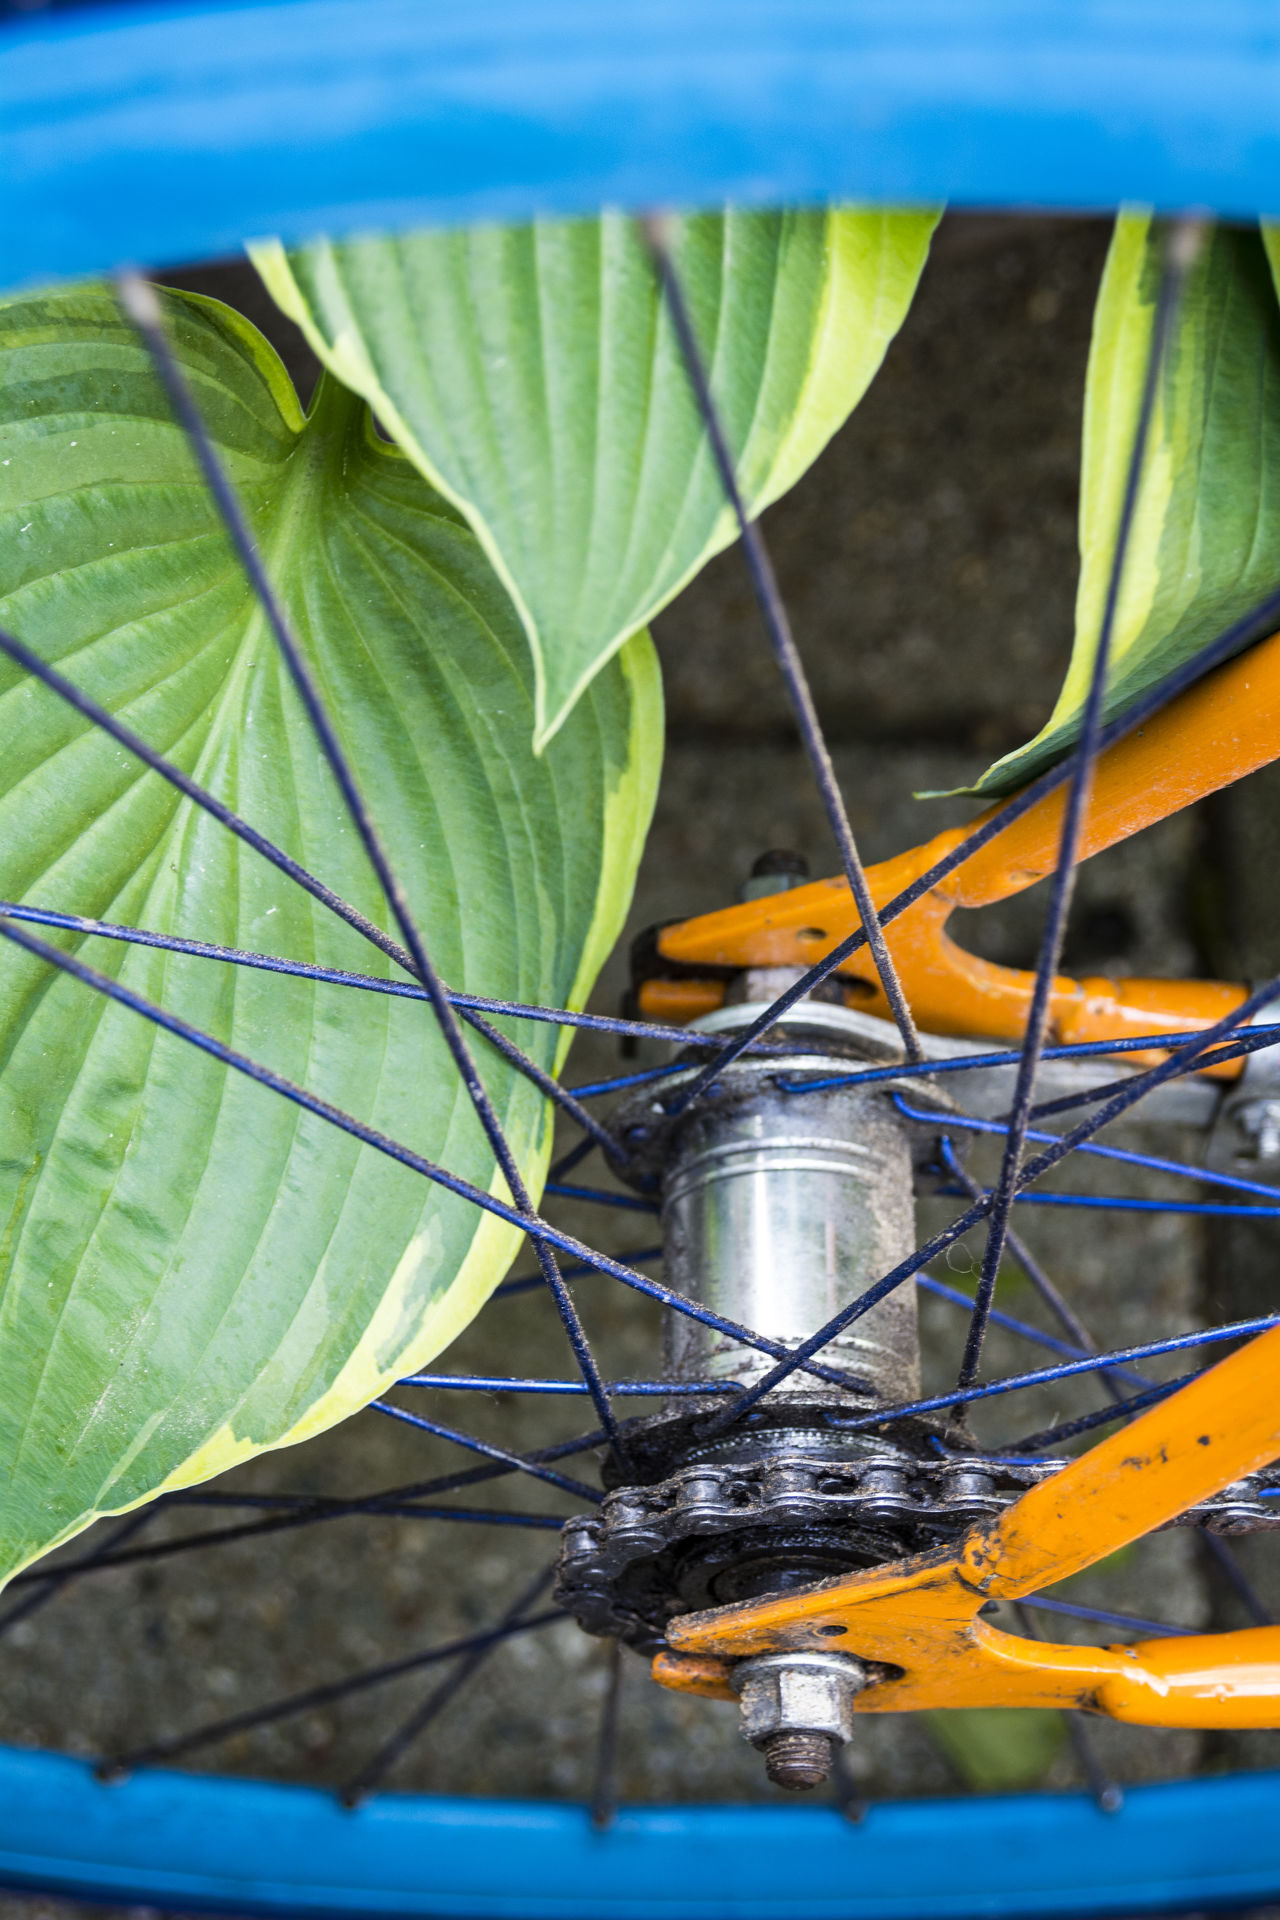 Beauty In Nature Bicicletta Bicycle Bike Blue Chain Close-up Day Enviroment Enviromental Friendly Green Color Gritty Growth Human Transportation Leaf Nature No People Orange Outdoors Outside Plant Spokes Transportation Water Wheel